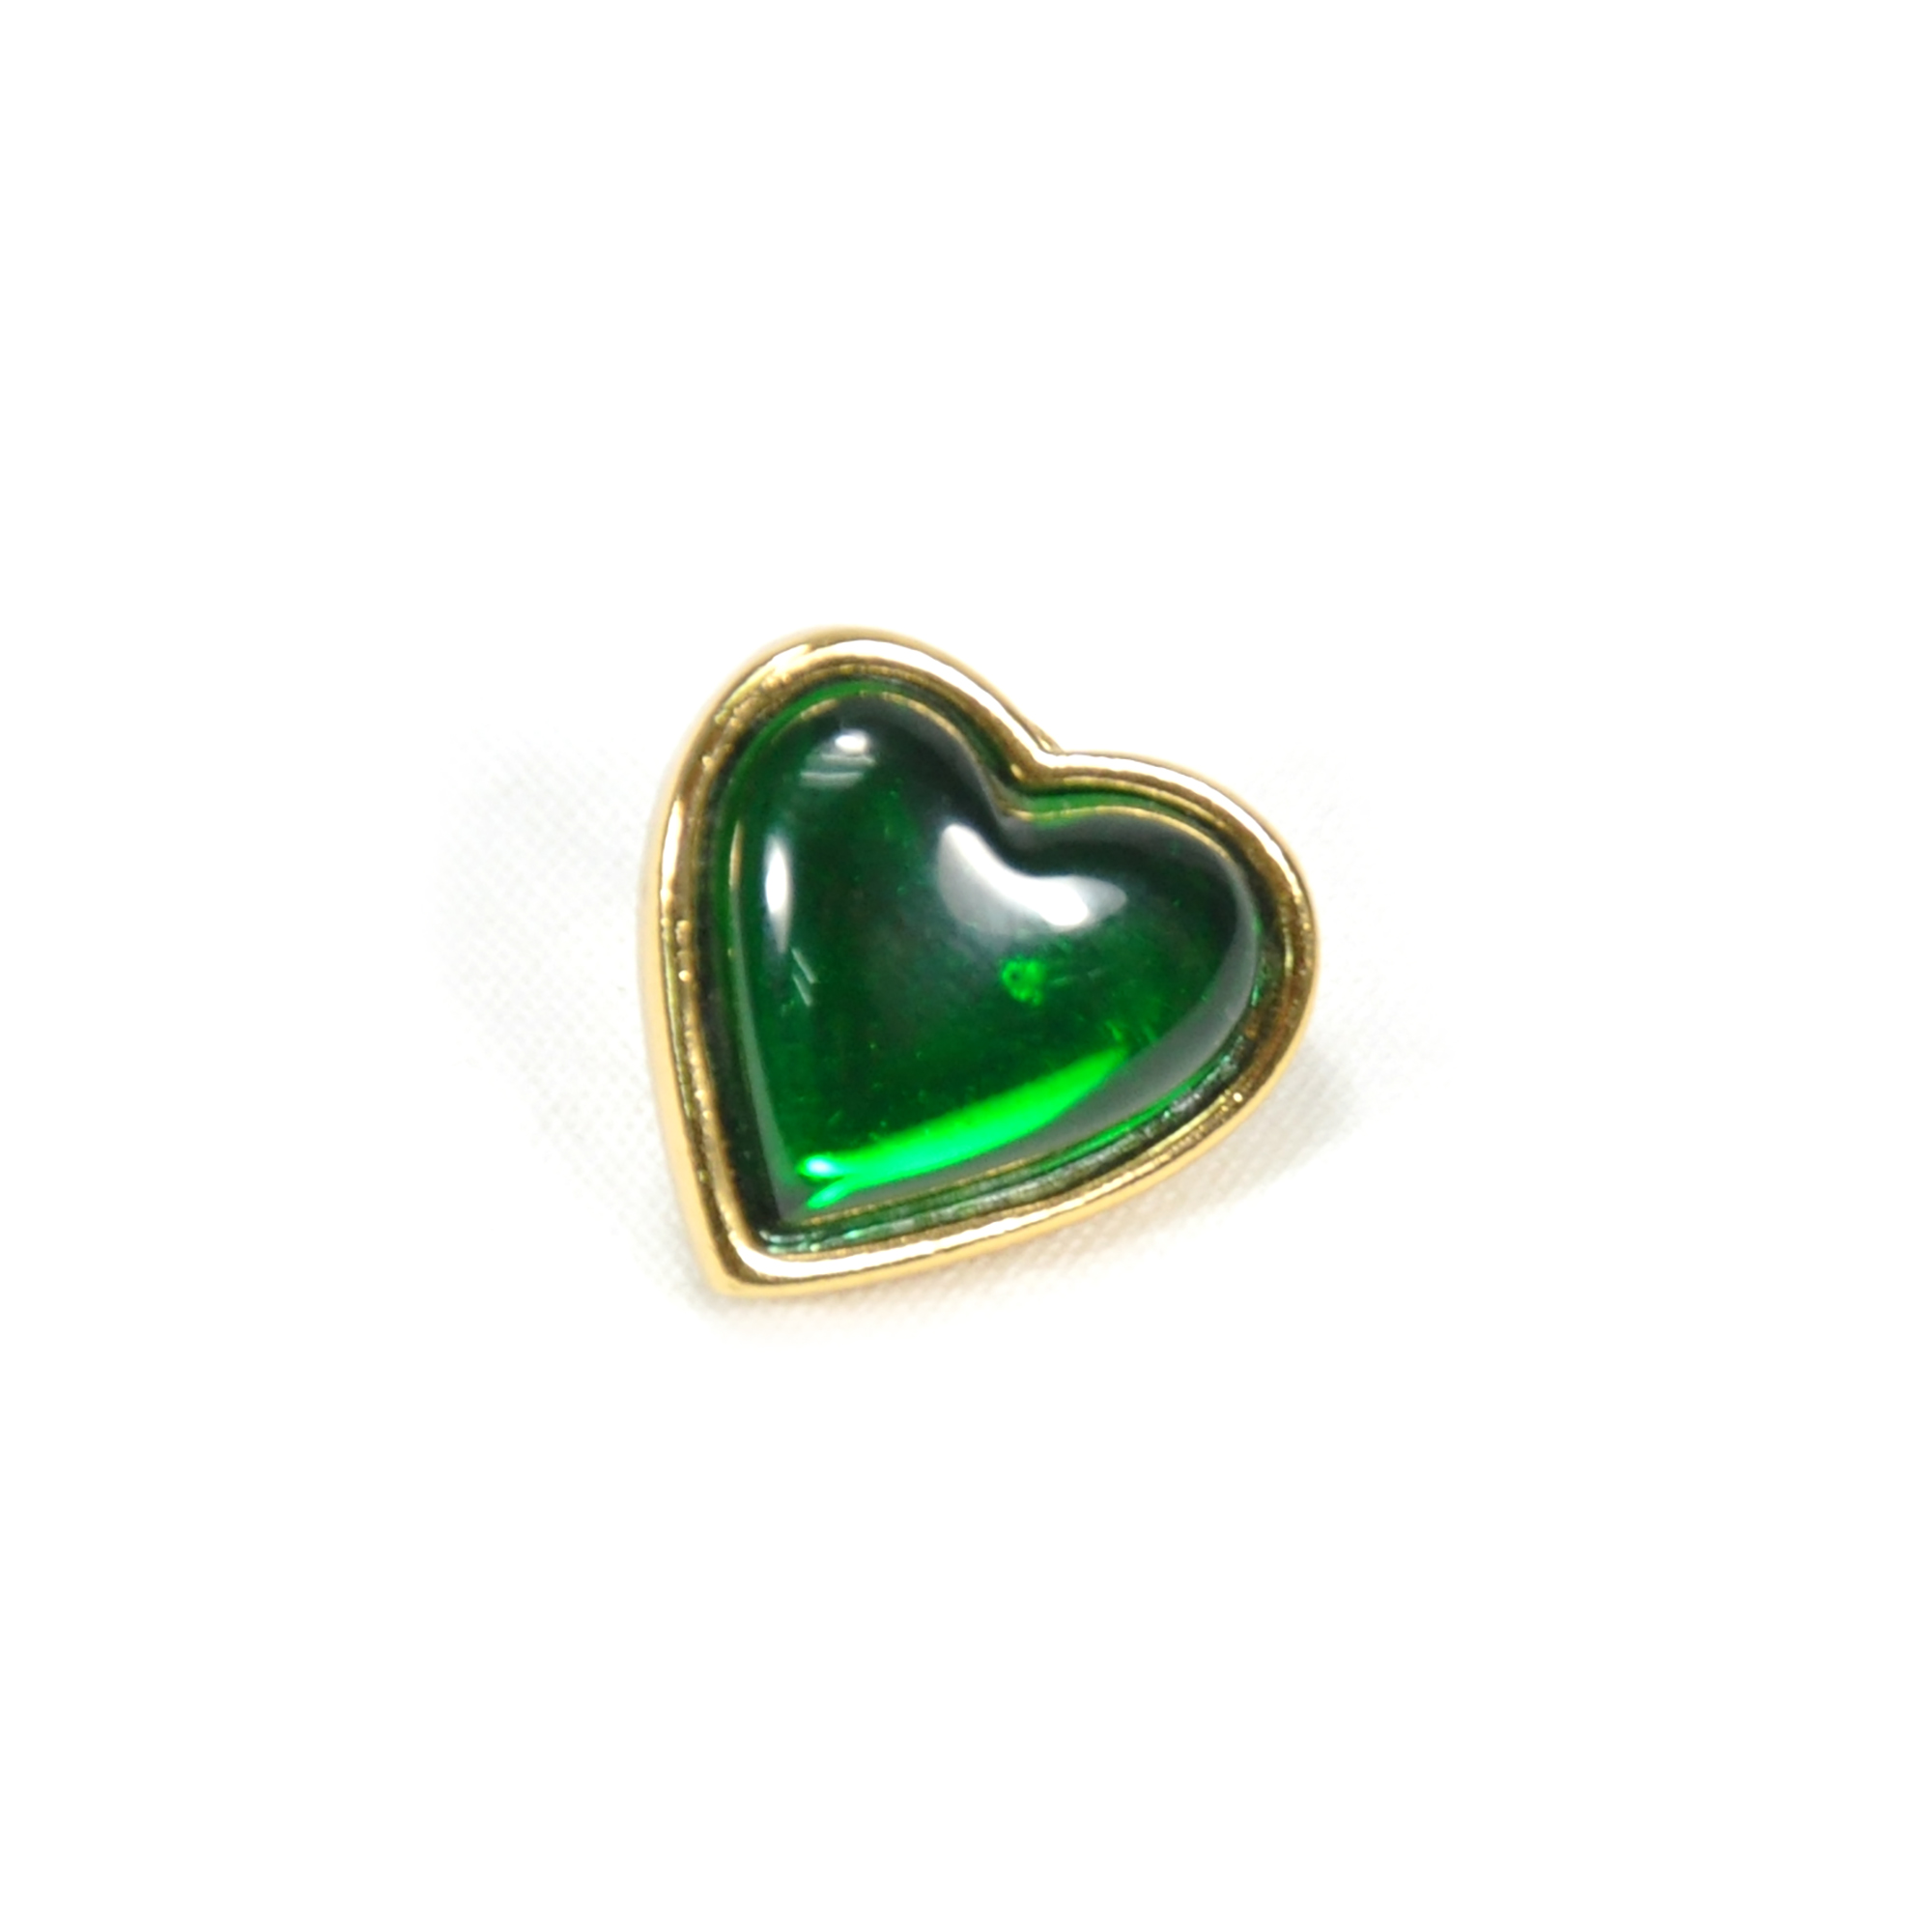 44069267a19 Authentic Vintage Yves Saint Laurent Glass Heart Brooch Green  (TFC-203-00034) - THE FIFTH COLLECTION